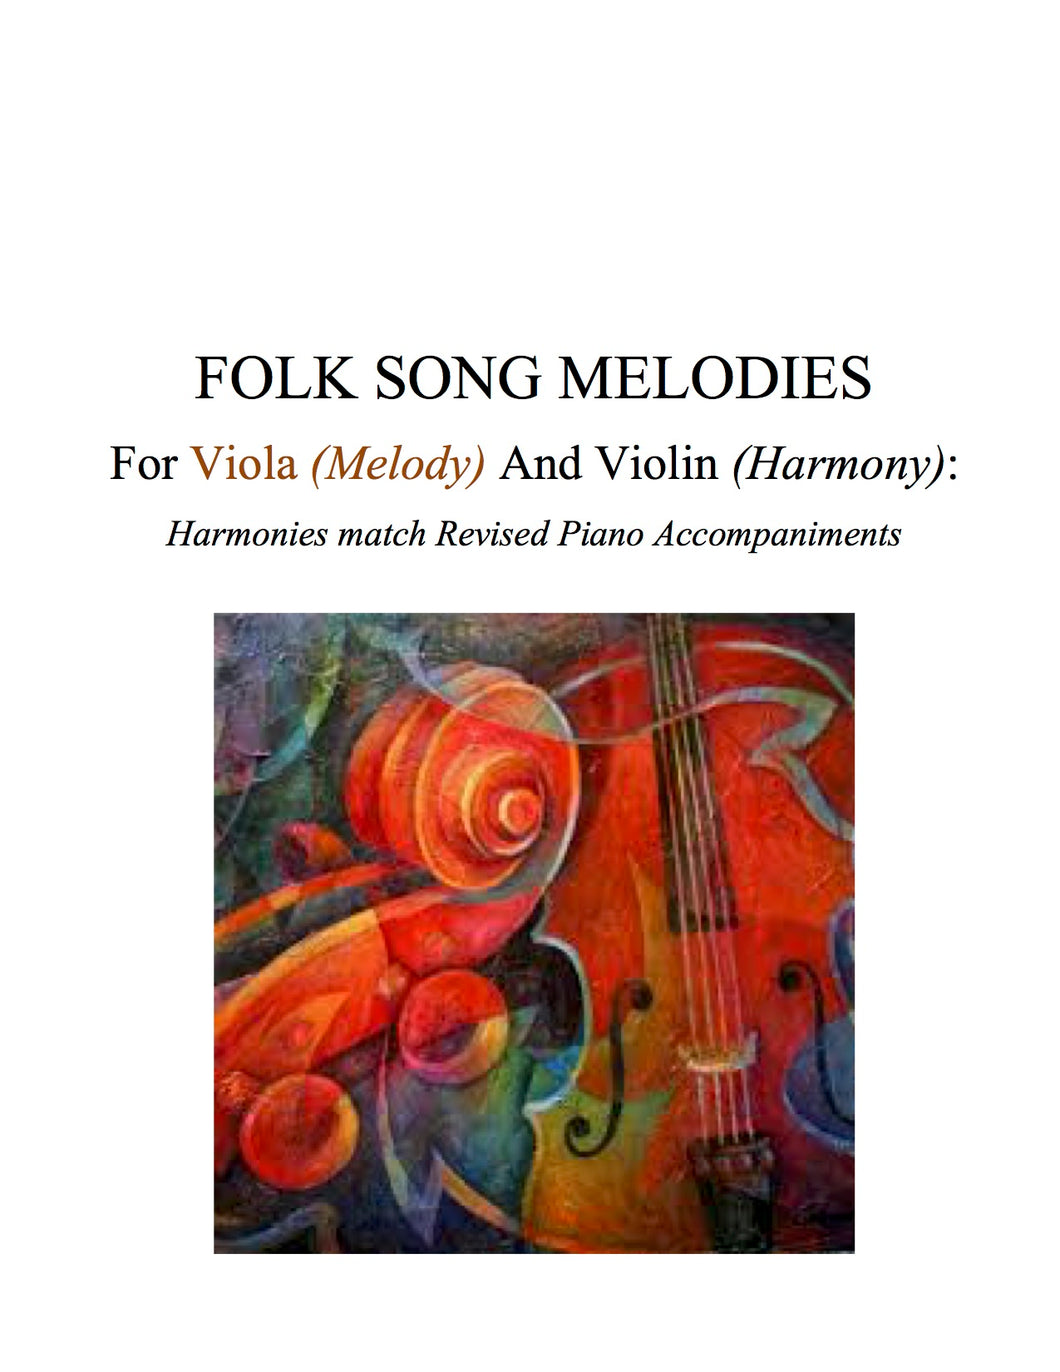 015 - PDF BUNDLE - Folk Song Melodies For Viola (Melody) and Violin (Harmony) Twinkle - Etude